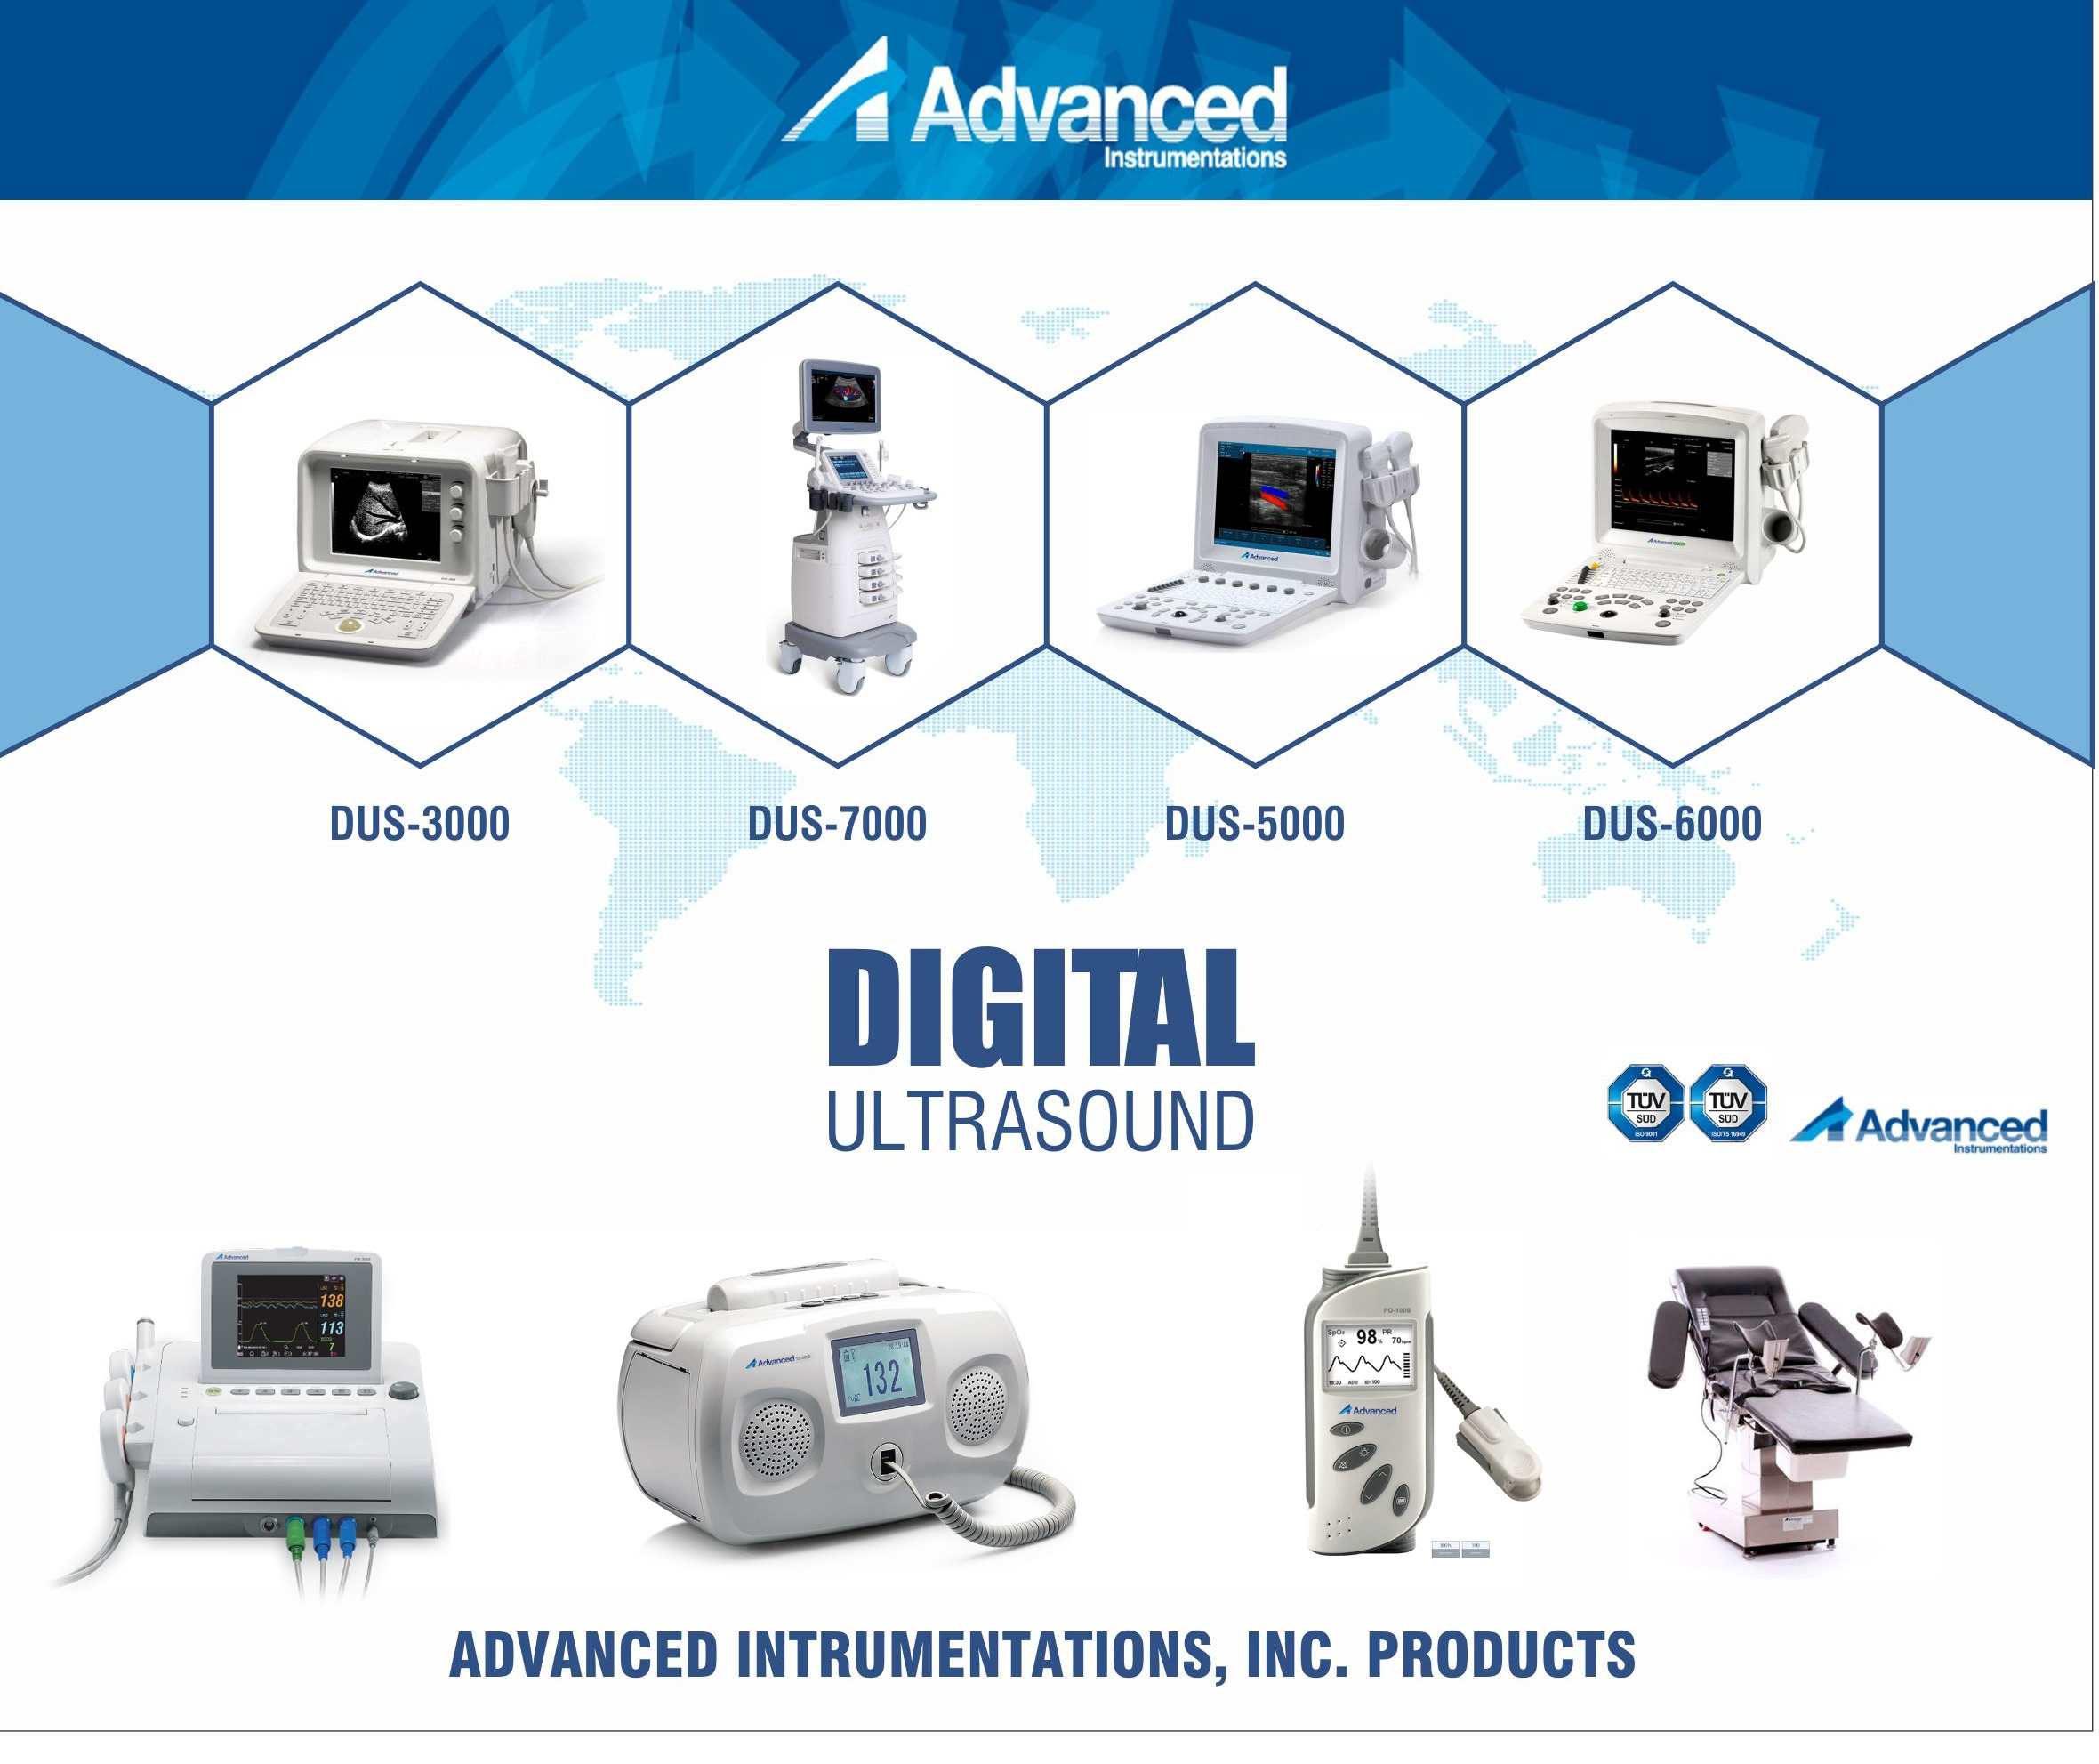 Advanced Instrumentations, Inc.-USA